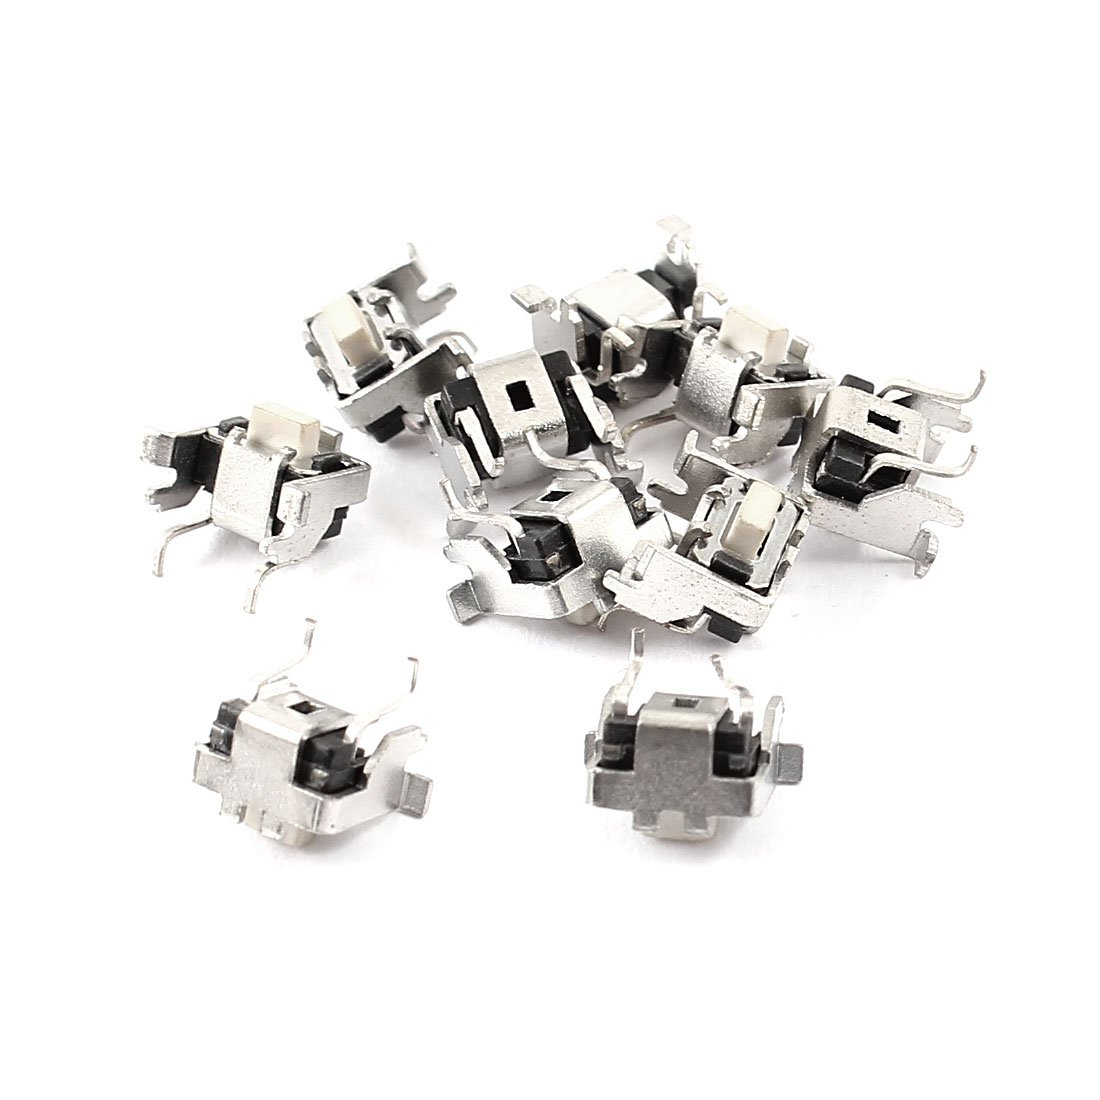 Uxcell Tact Switch 10 Piece